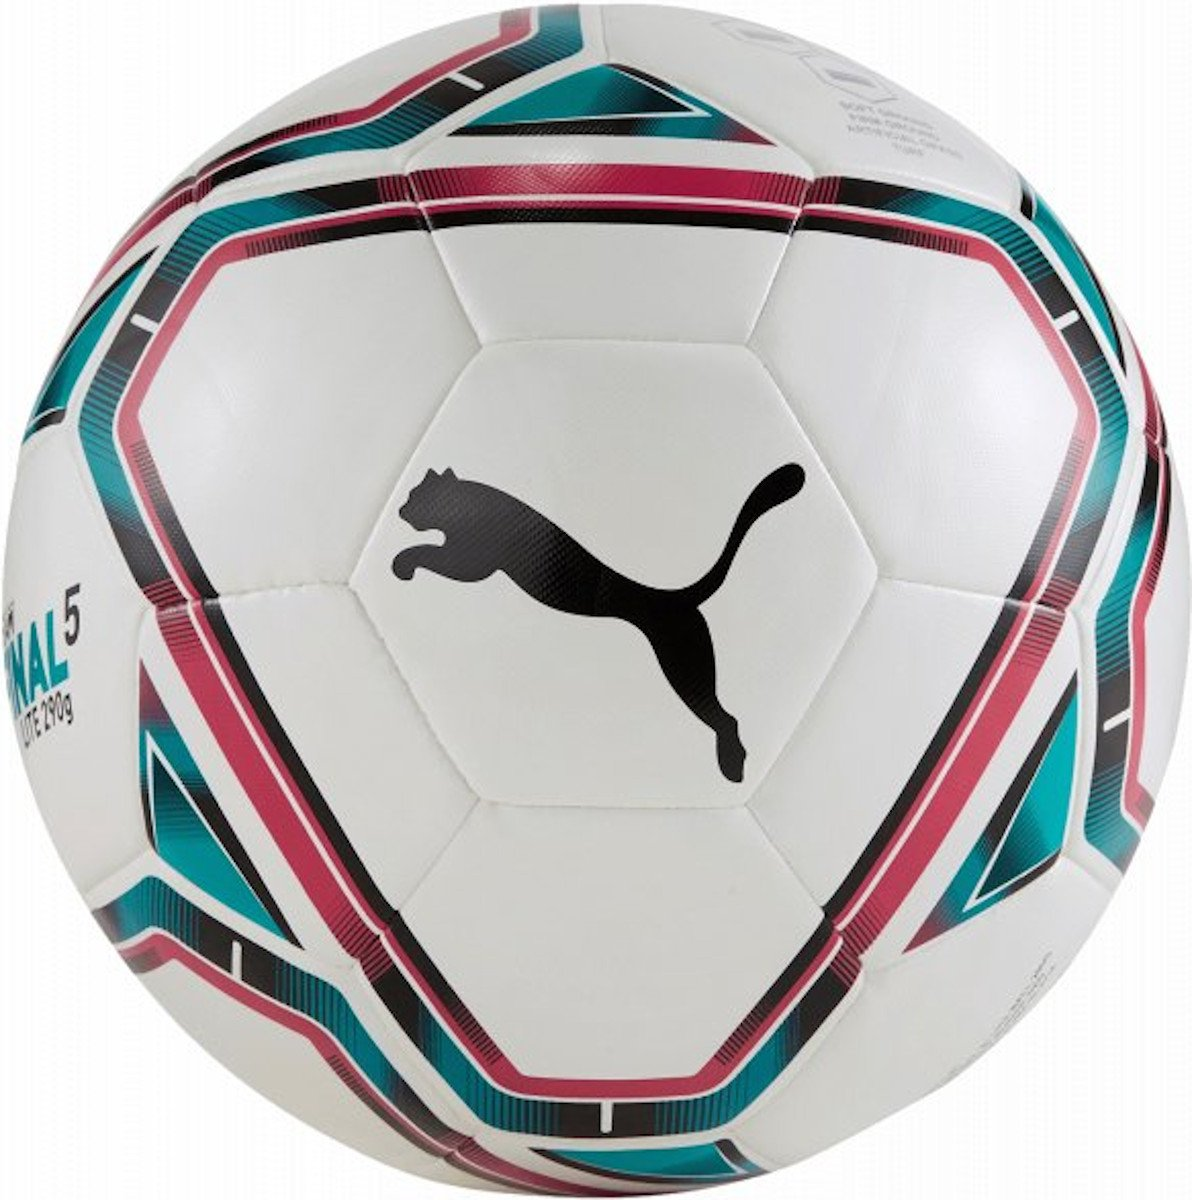 Ballon Puma teamFINAL 21 Lite Ball 290g